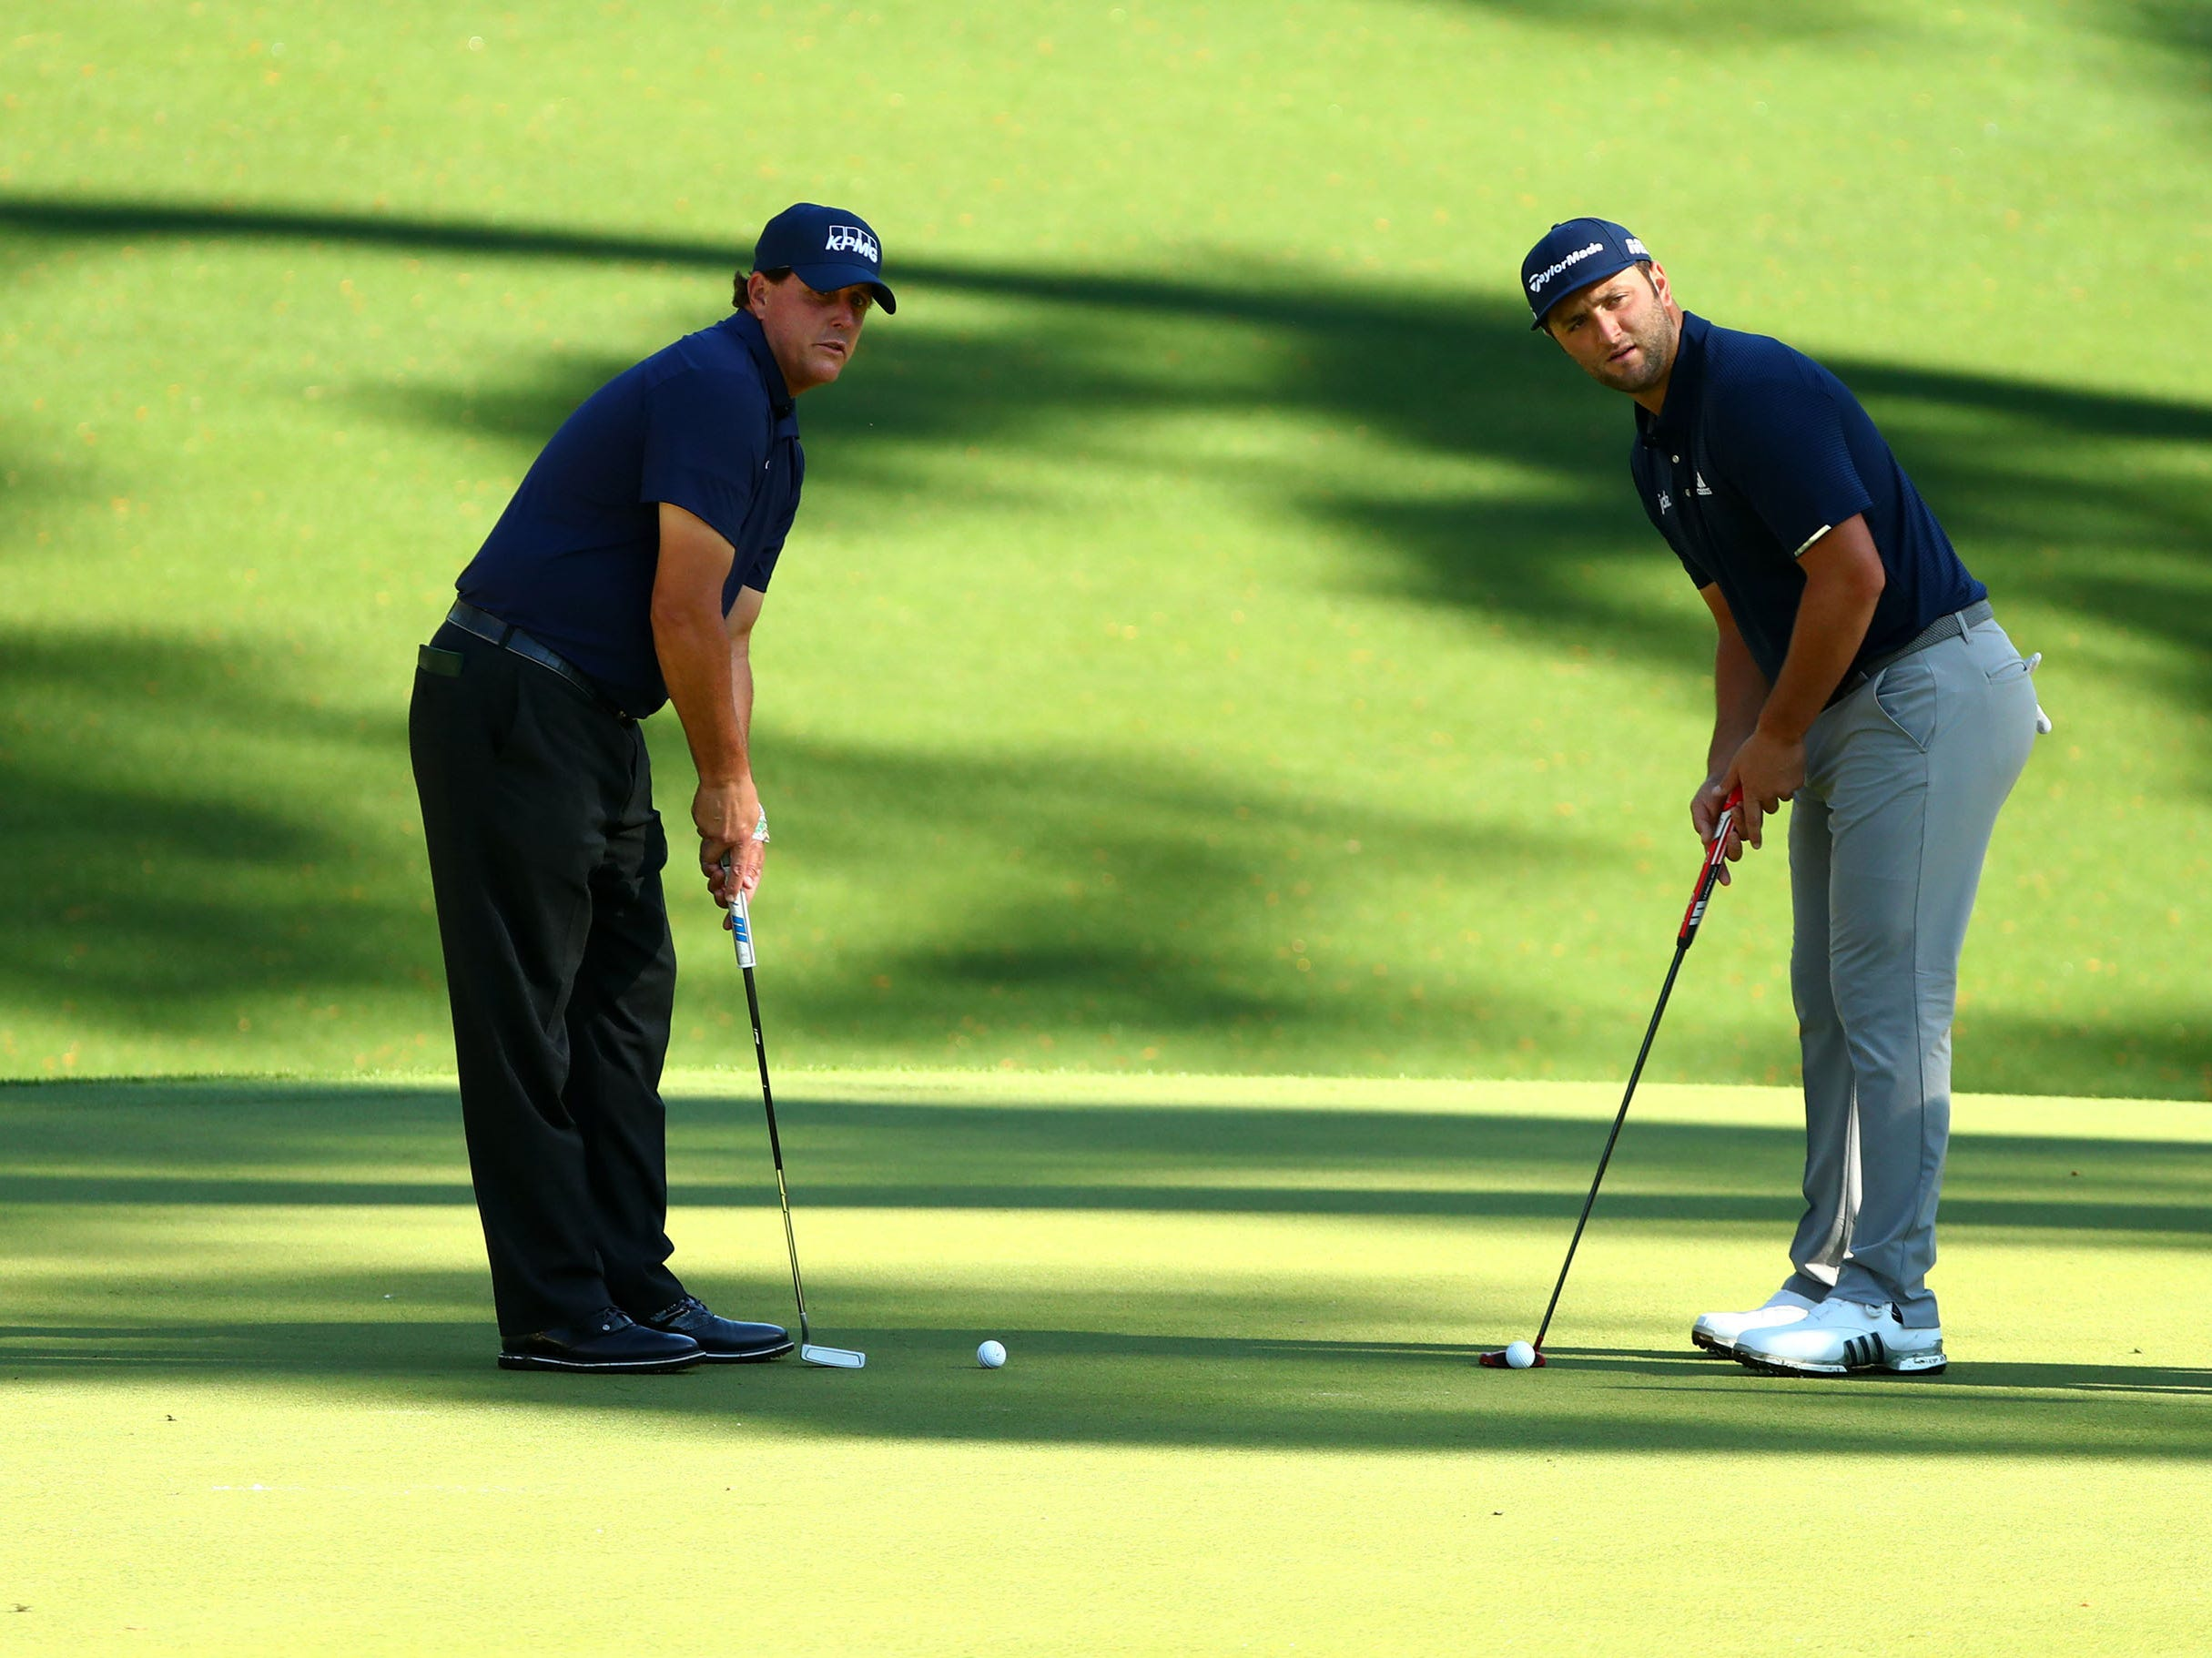 Apr 10, 2019; Augusta, GA, USA; Masters champion Phil Mickelson and Jon Rahm of Spain putt on the 10th green during a practice round for The Masters golf tournament at Augusta National Golf Club. Mandatory Credit: Rob Schumacher-USA TODAY Sports